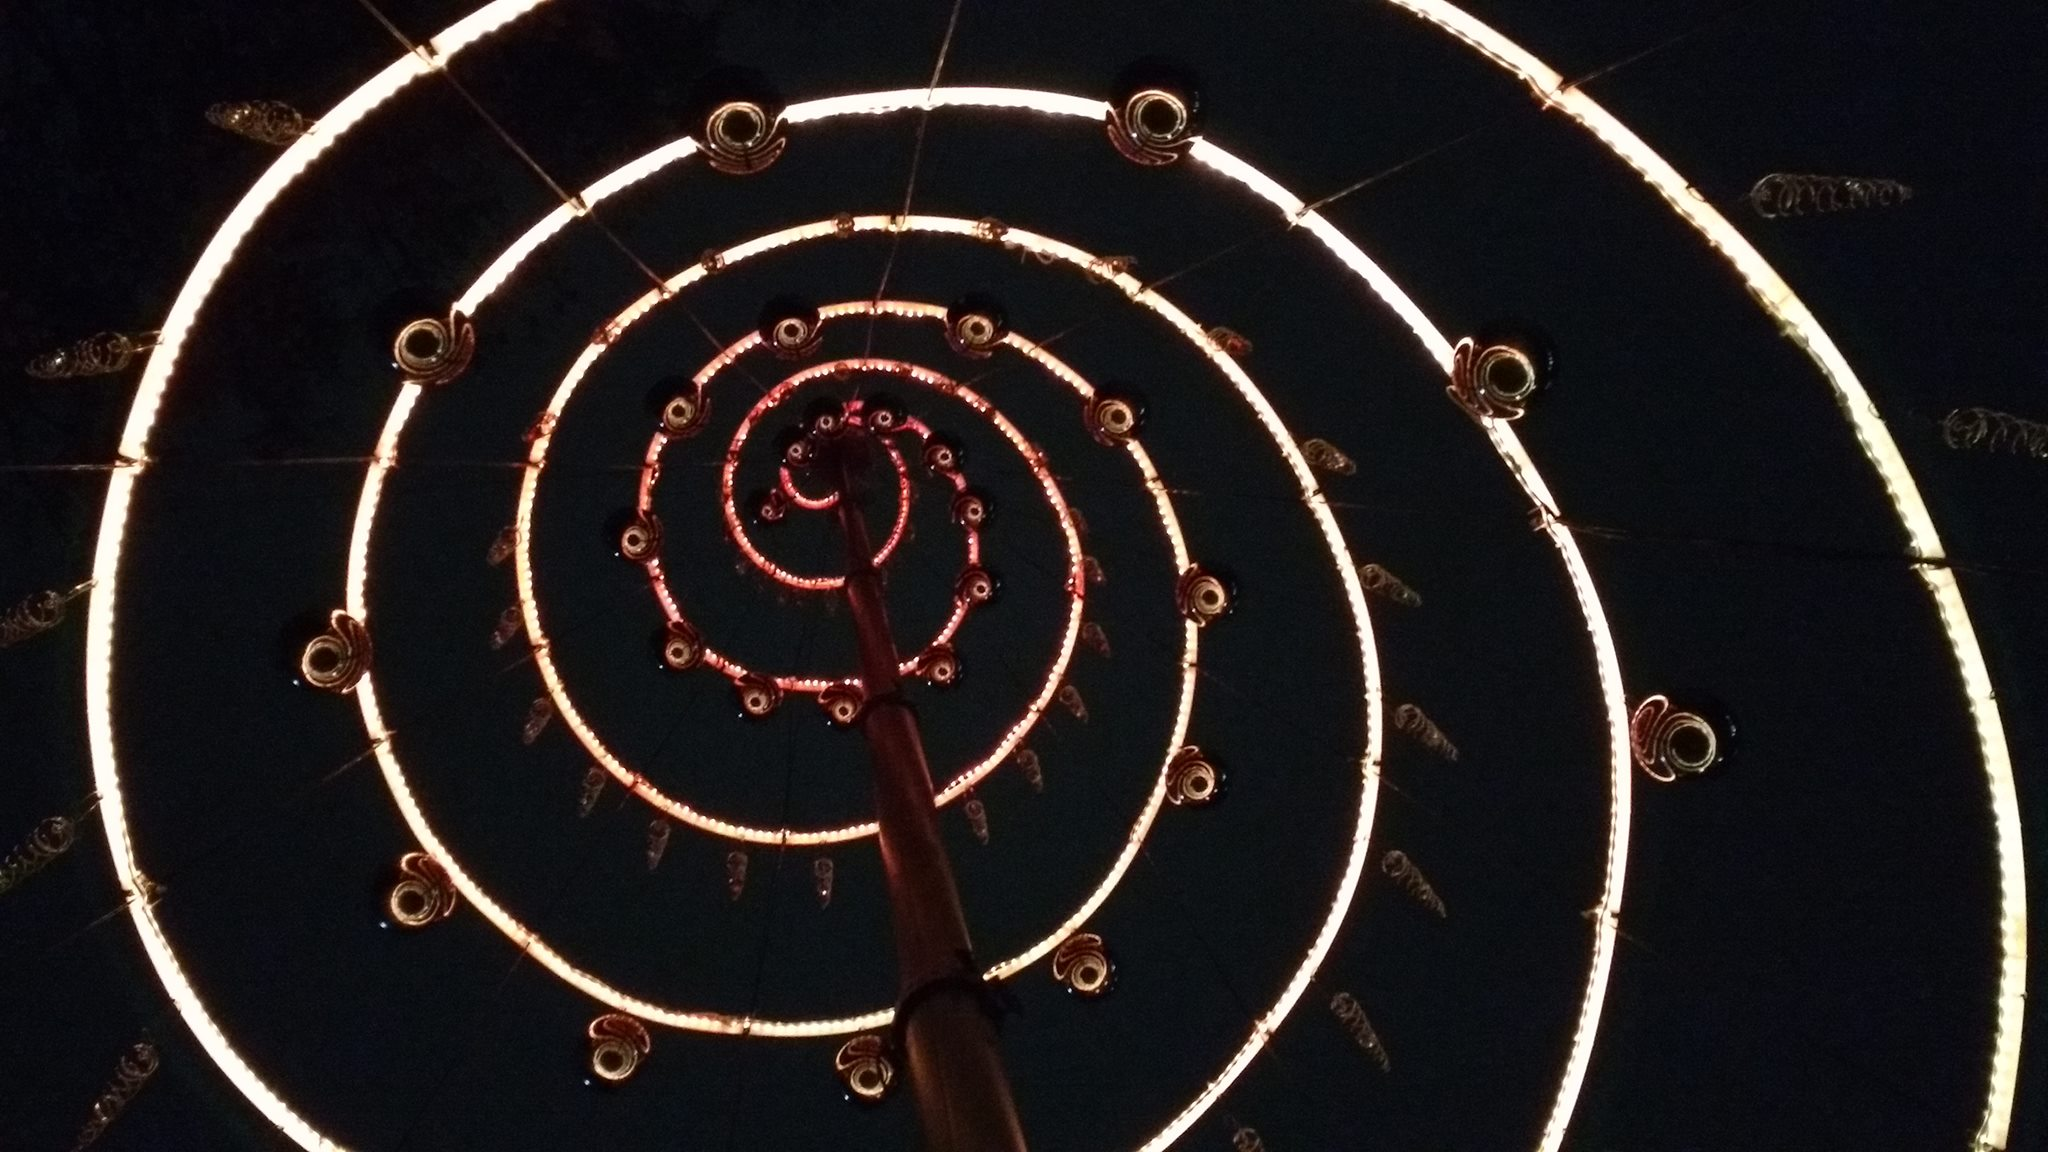 Spiral of Lights Interactive Art Installation